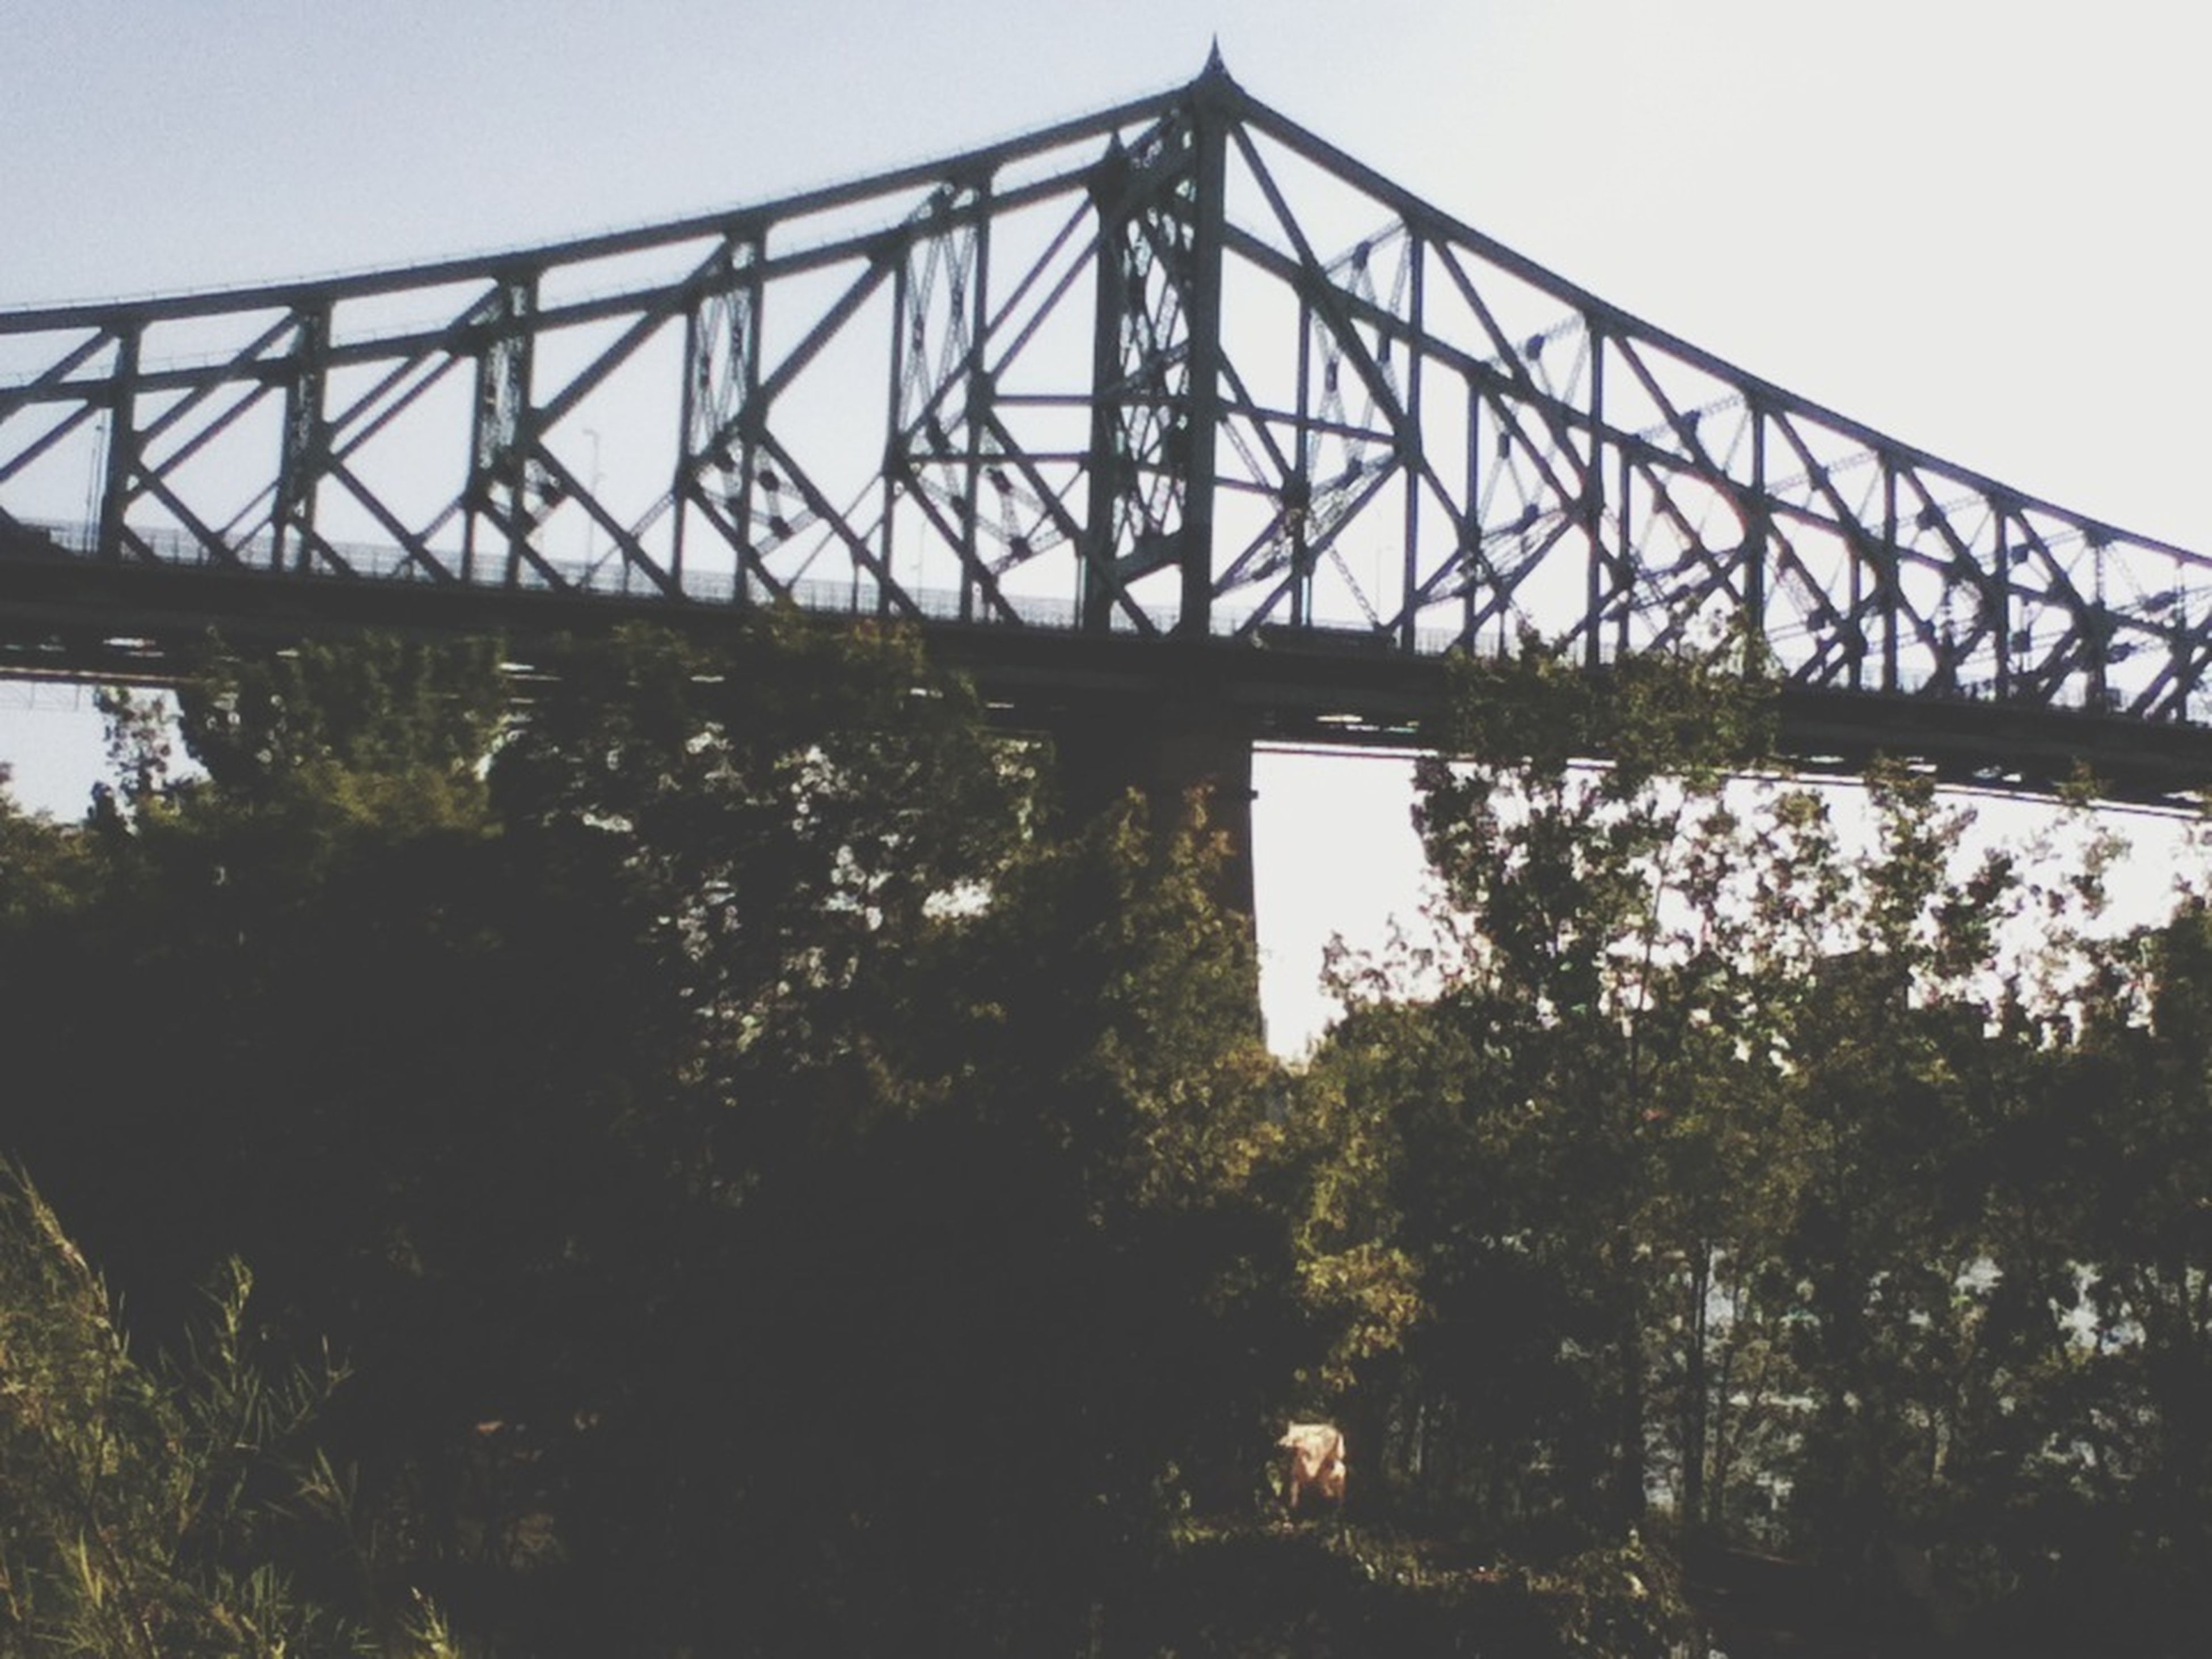 connection, bridge - man made structure, built structure, low angle view, clear sky, tree, architecture, engineering, metal, sky, bridge, metallic, no people, outdoors, day, growth, nature, railing, footbridge, transportation